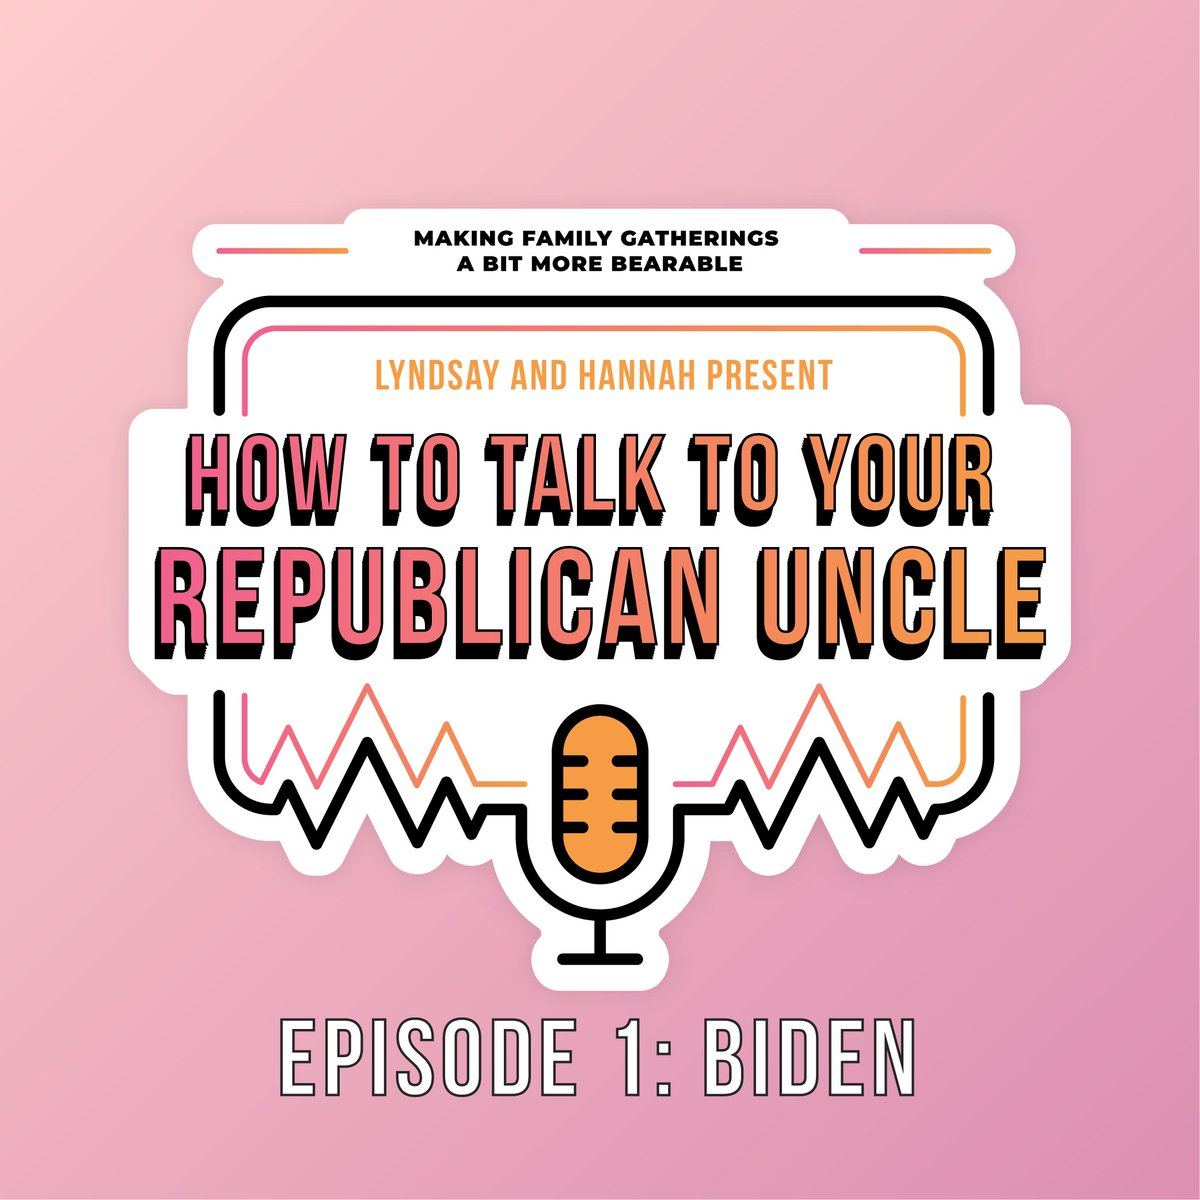 About to publish episode 1!! Episode 0 and 1 are out now, and we cant wait for you to join us on this journey! Check out our podcast on Spotify, anchor, pocket casts, and youtube. You can also follow us on here, Instagram and Facebook! #podcast #bidenharris #howto #live #liberal